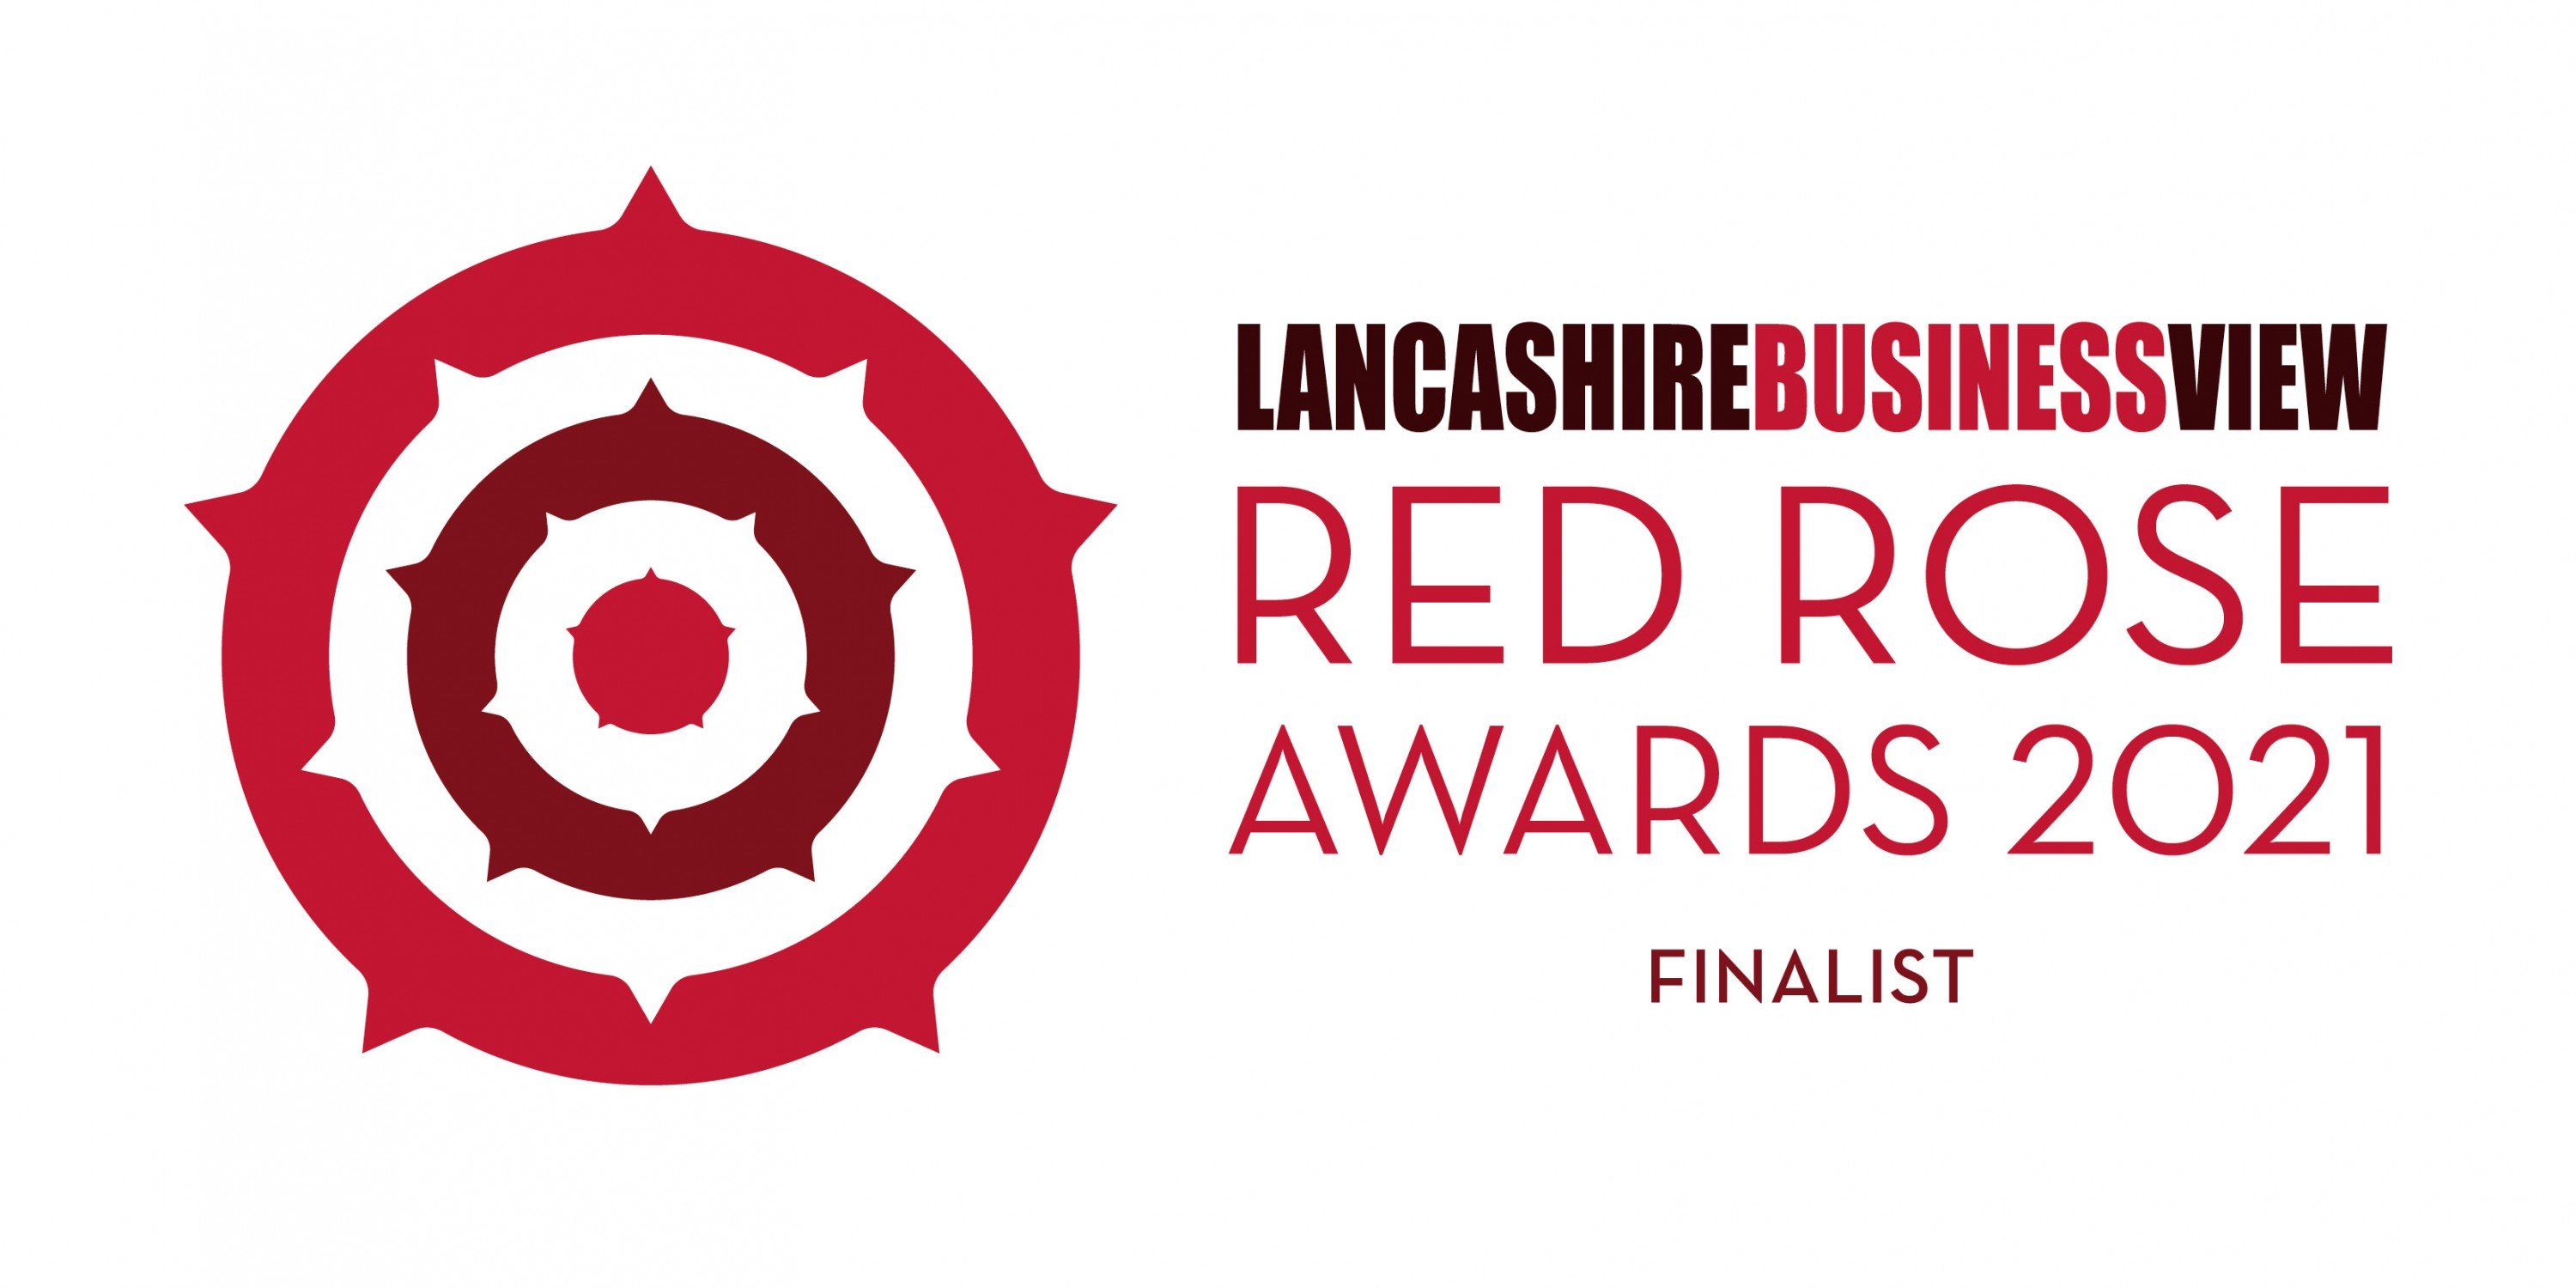 Elektec are finalists for the Red Rose Awards Small Business of the Year 2021